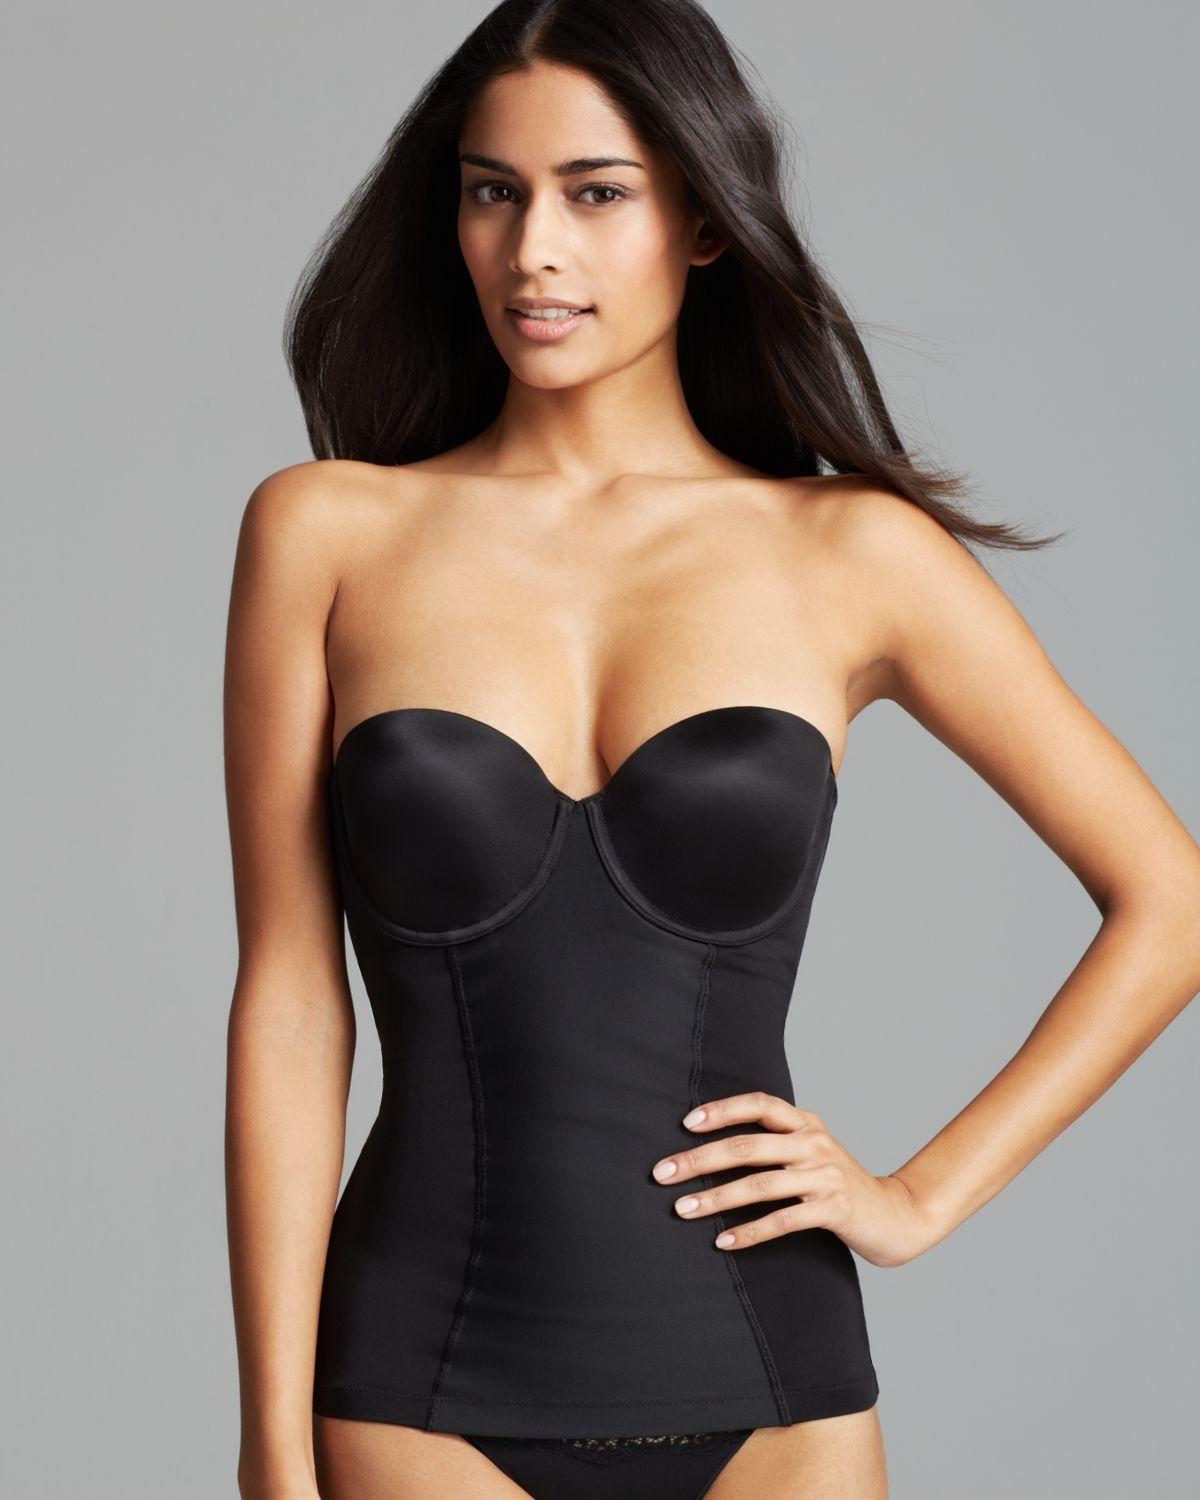 Spanx Boostie-yay Camisole Corset #1907 in Black